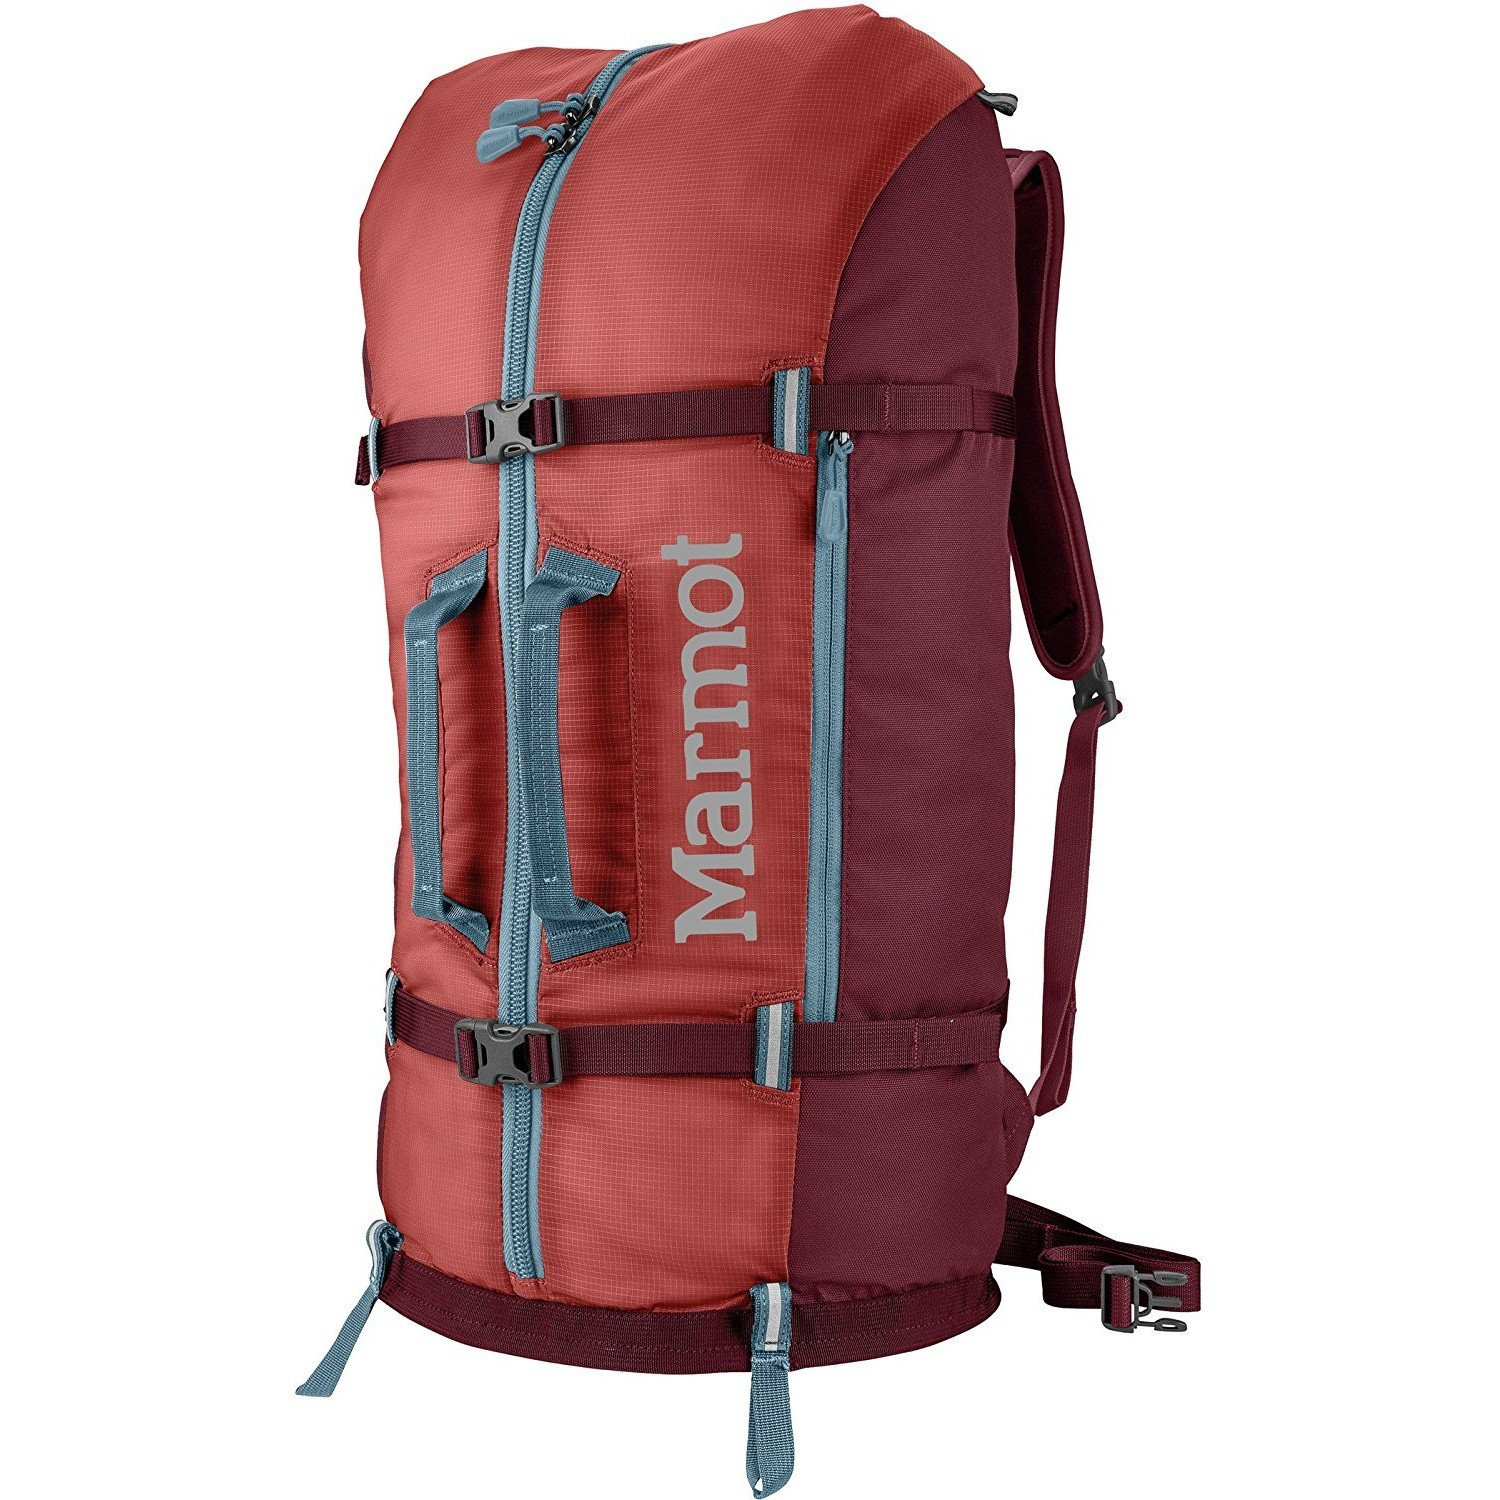 Marmot Rock Gear para vehículos de Escalada Mochila, Color Retro Red/Port, tamaño Talla única, Volumen Liters 33.0 23240-6903